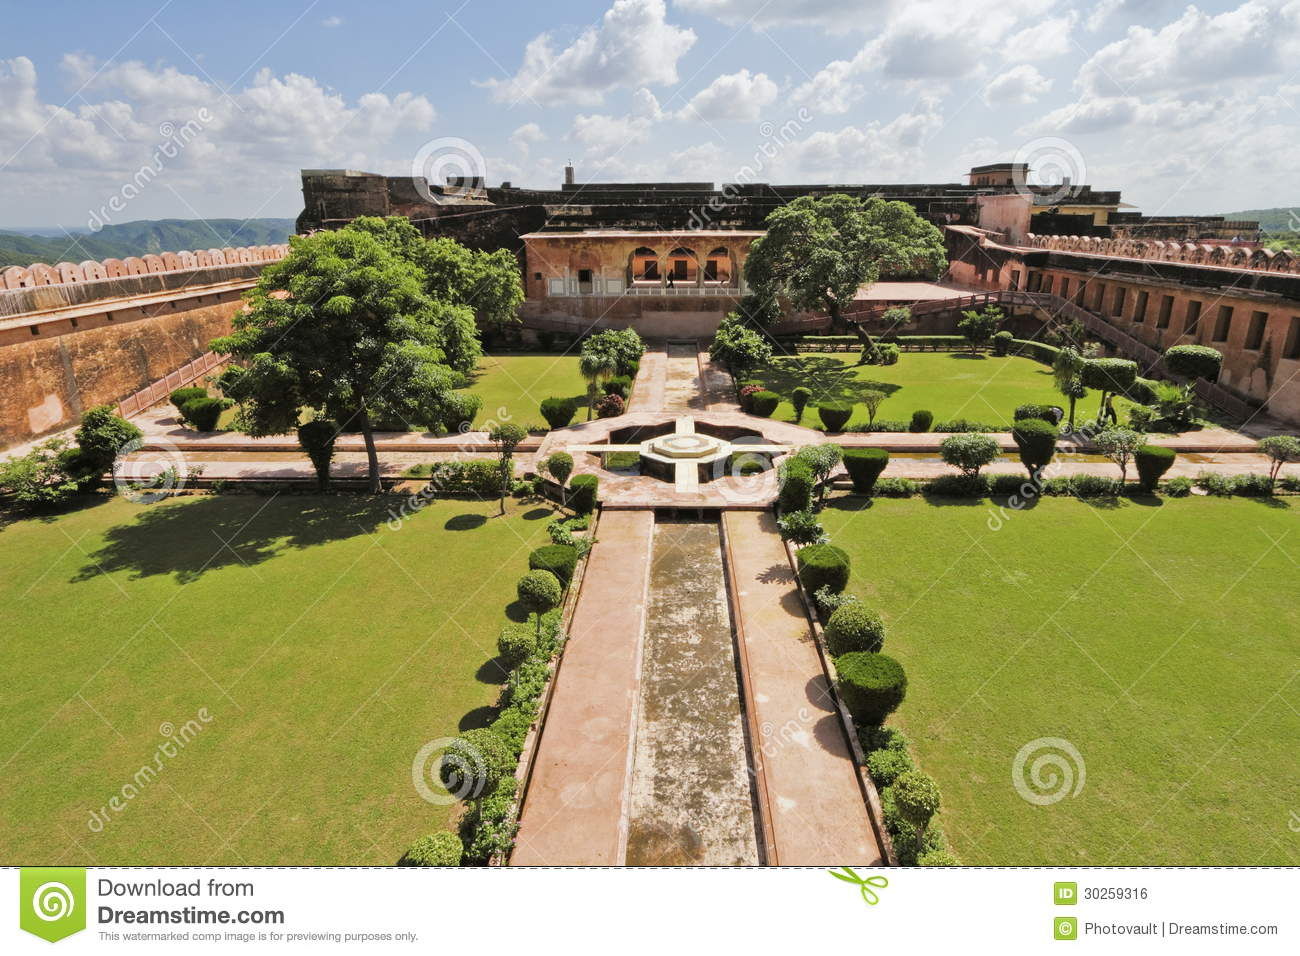 Charbagh garden at jaigarh fort stock photo image 30259316 - The well tended perennial garden ...